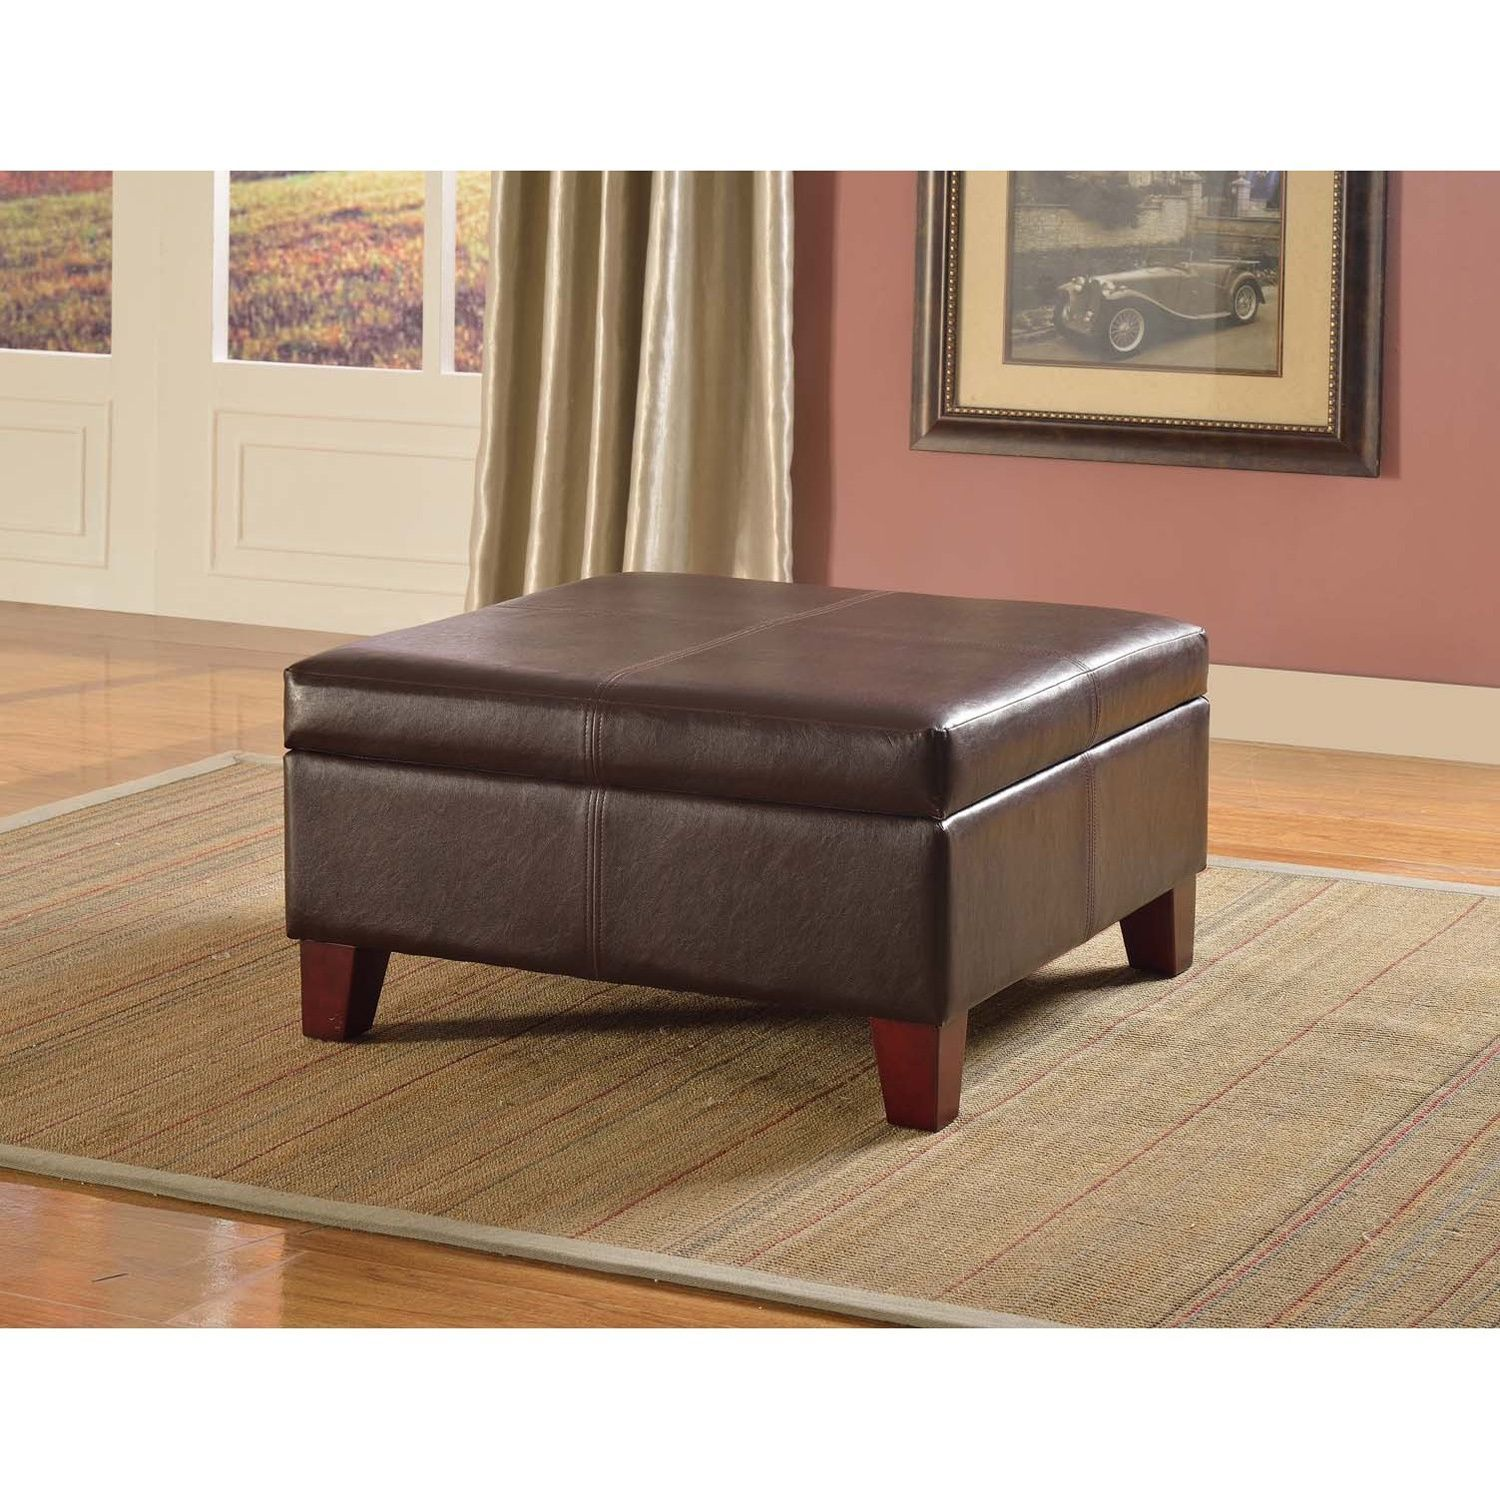 Ottoman Uses Sleek And Functional This Elegant Faux Leather Storage Ottoman